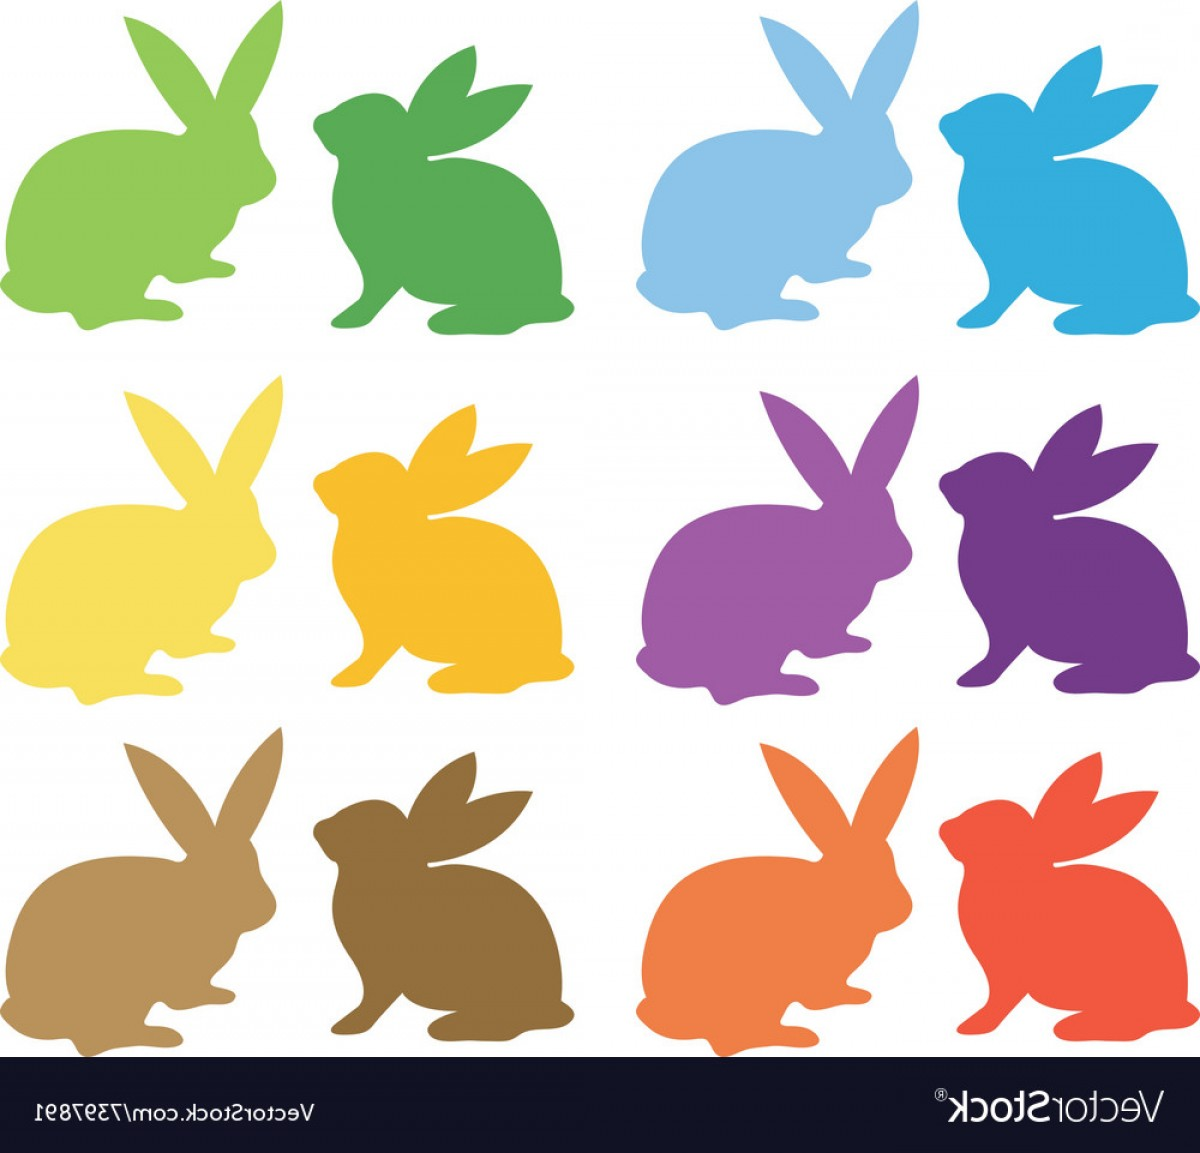 Easter Bunny Silhouette Collections Vector.